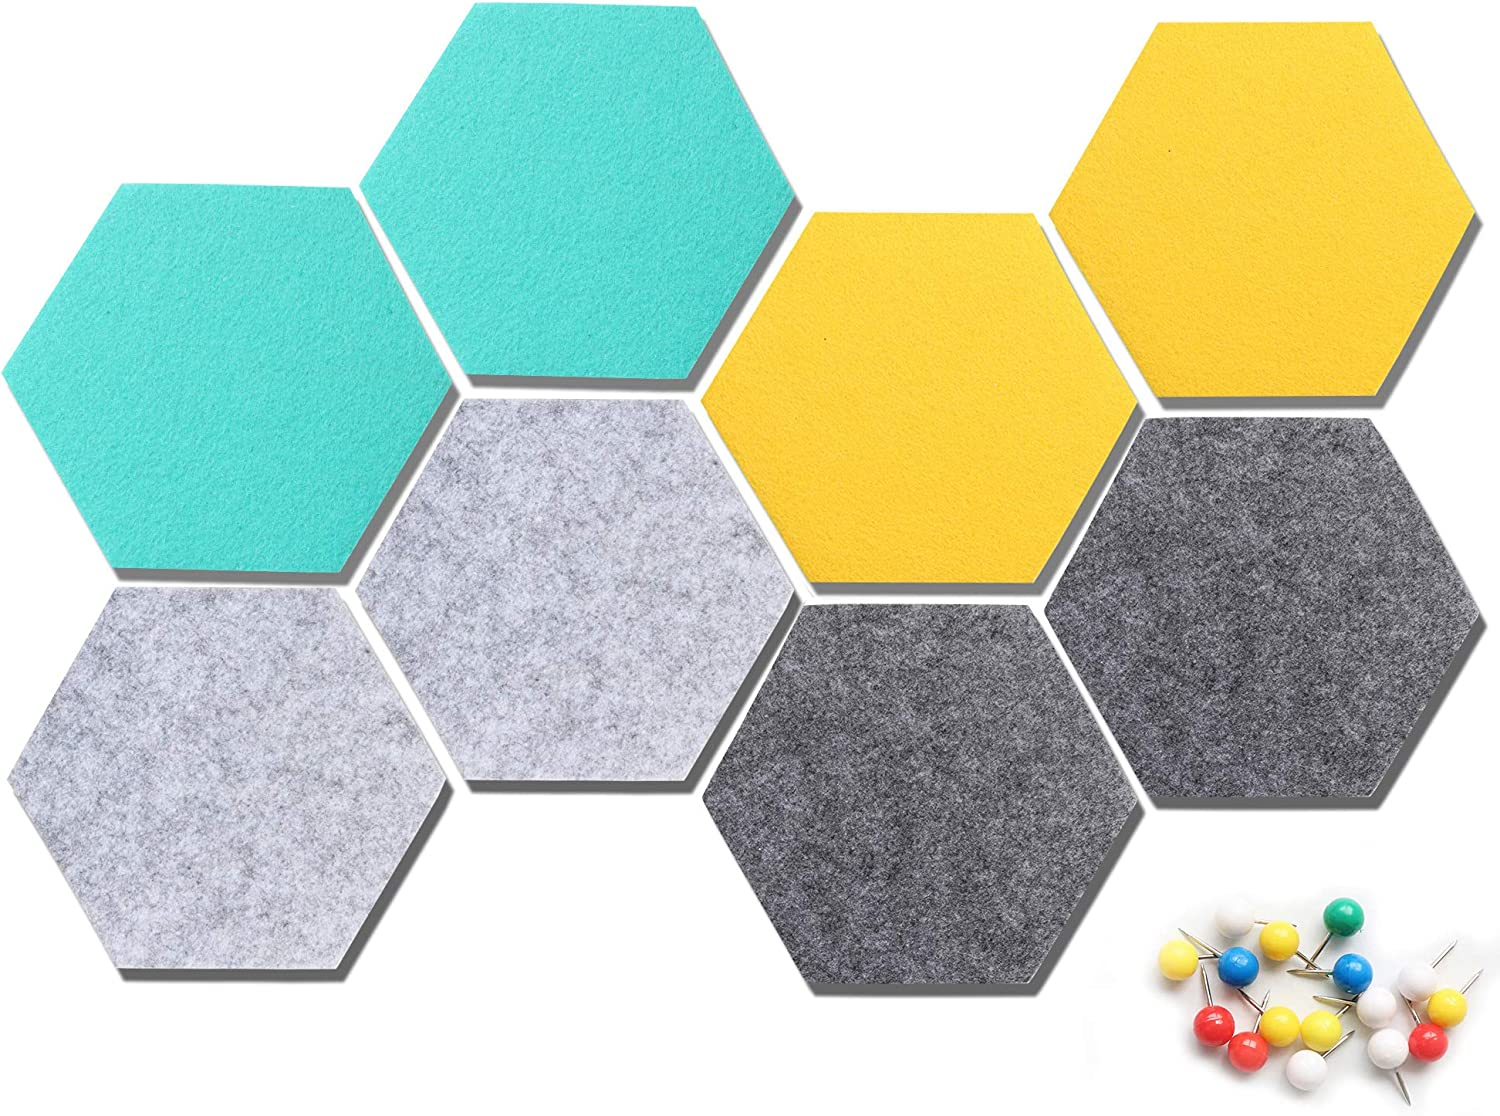 VANCORE Felt Tile Board Hexagon Push Pin Board for Wall Decor Self Adhesive Wall Bulletin Boards for Notes,Pictures,Photos,Memo, Office and Home Decor 5.1x5.8In, 8 Pcs/set